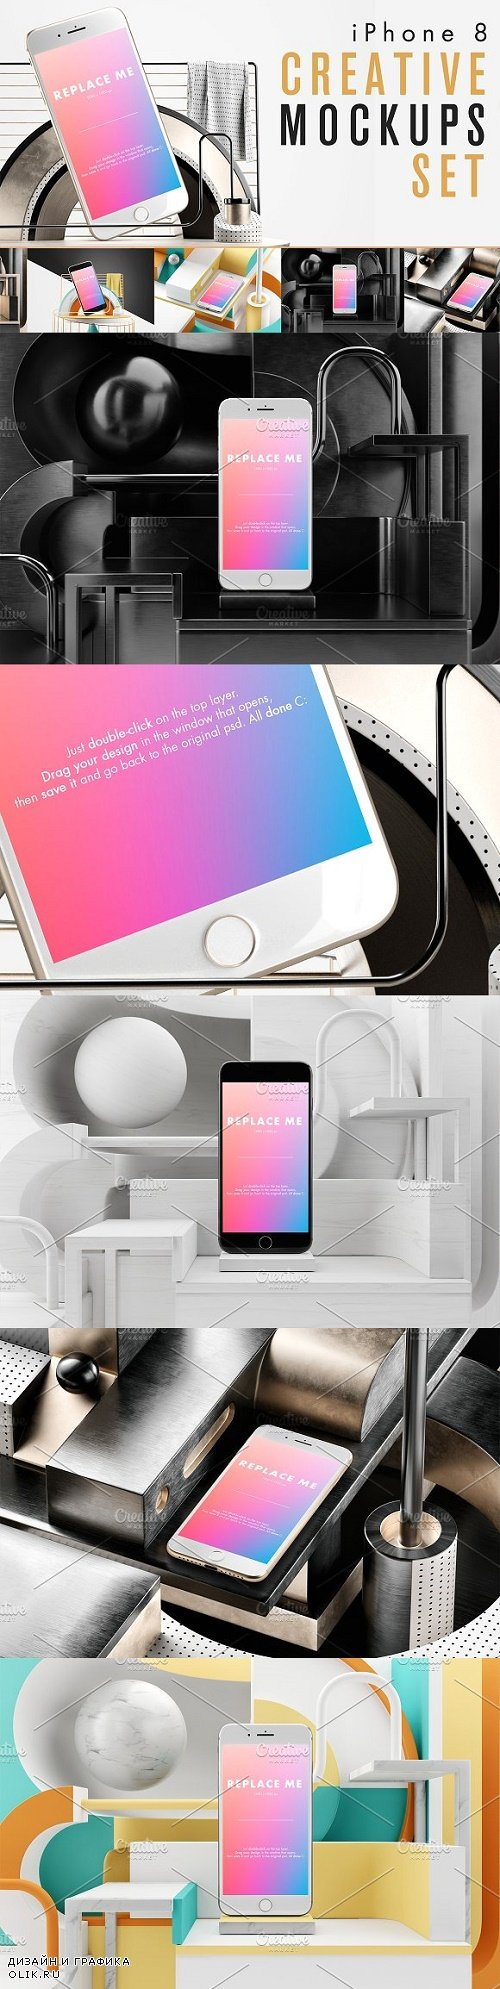 iPhone 8 Creative Mockups Set 2444847